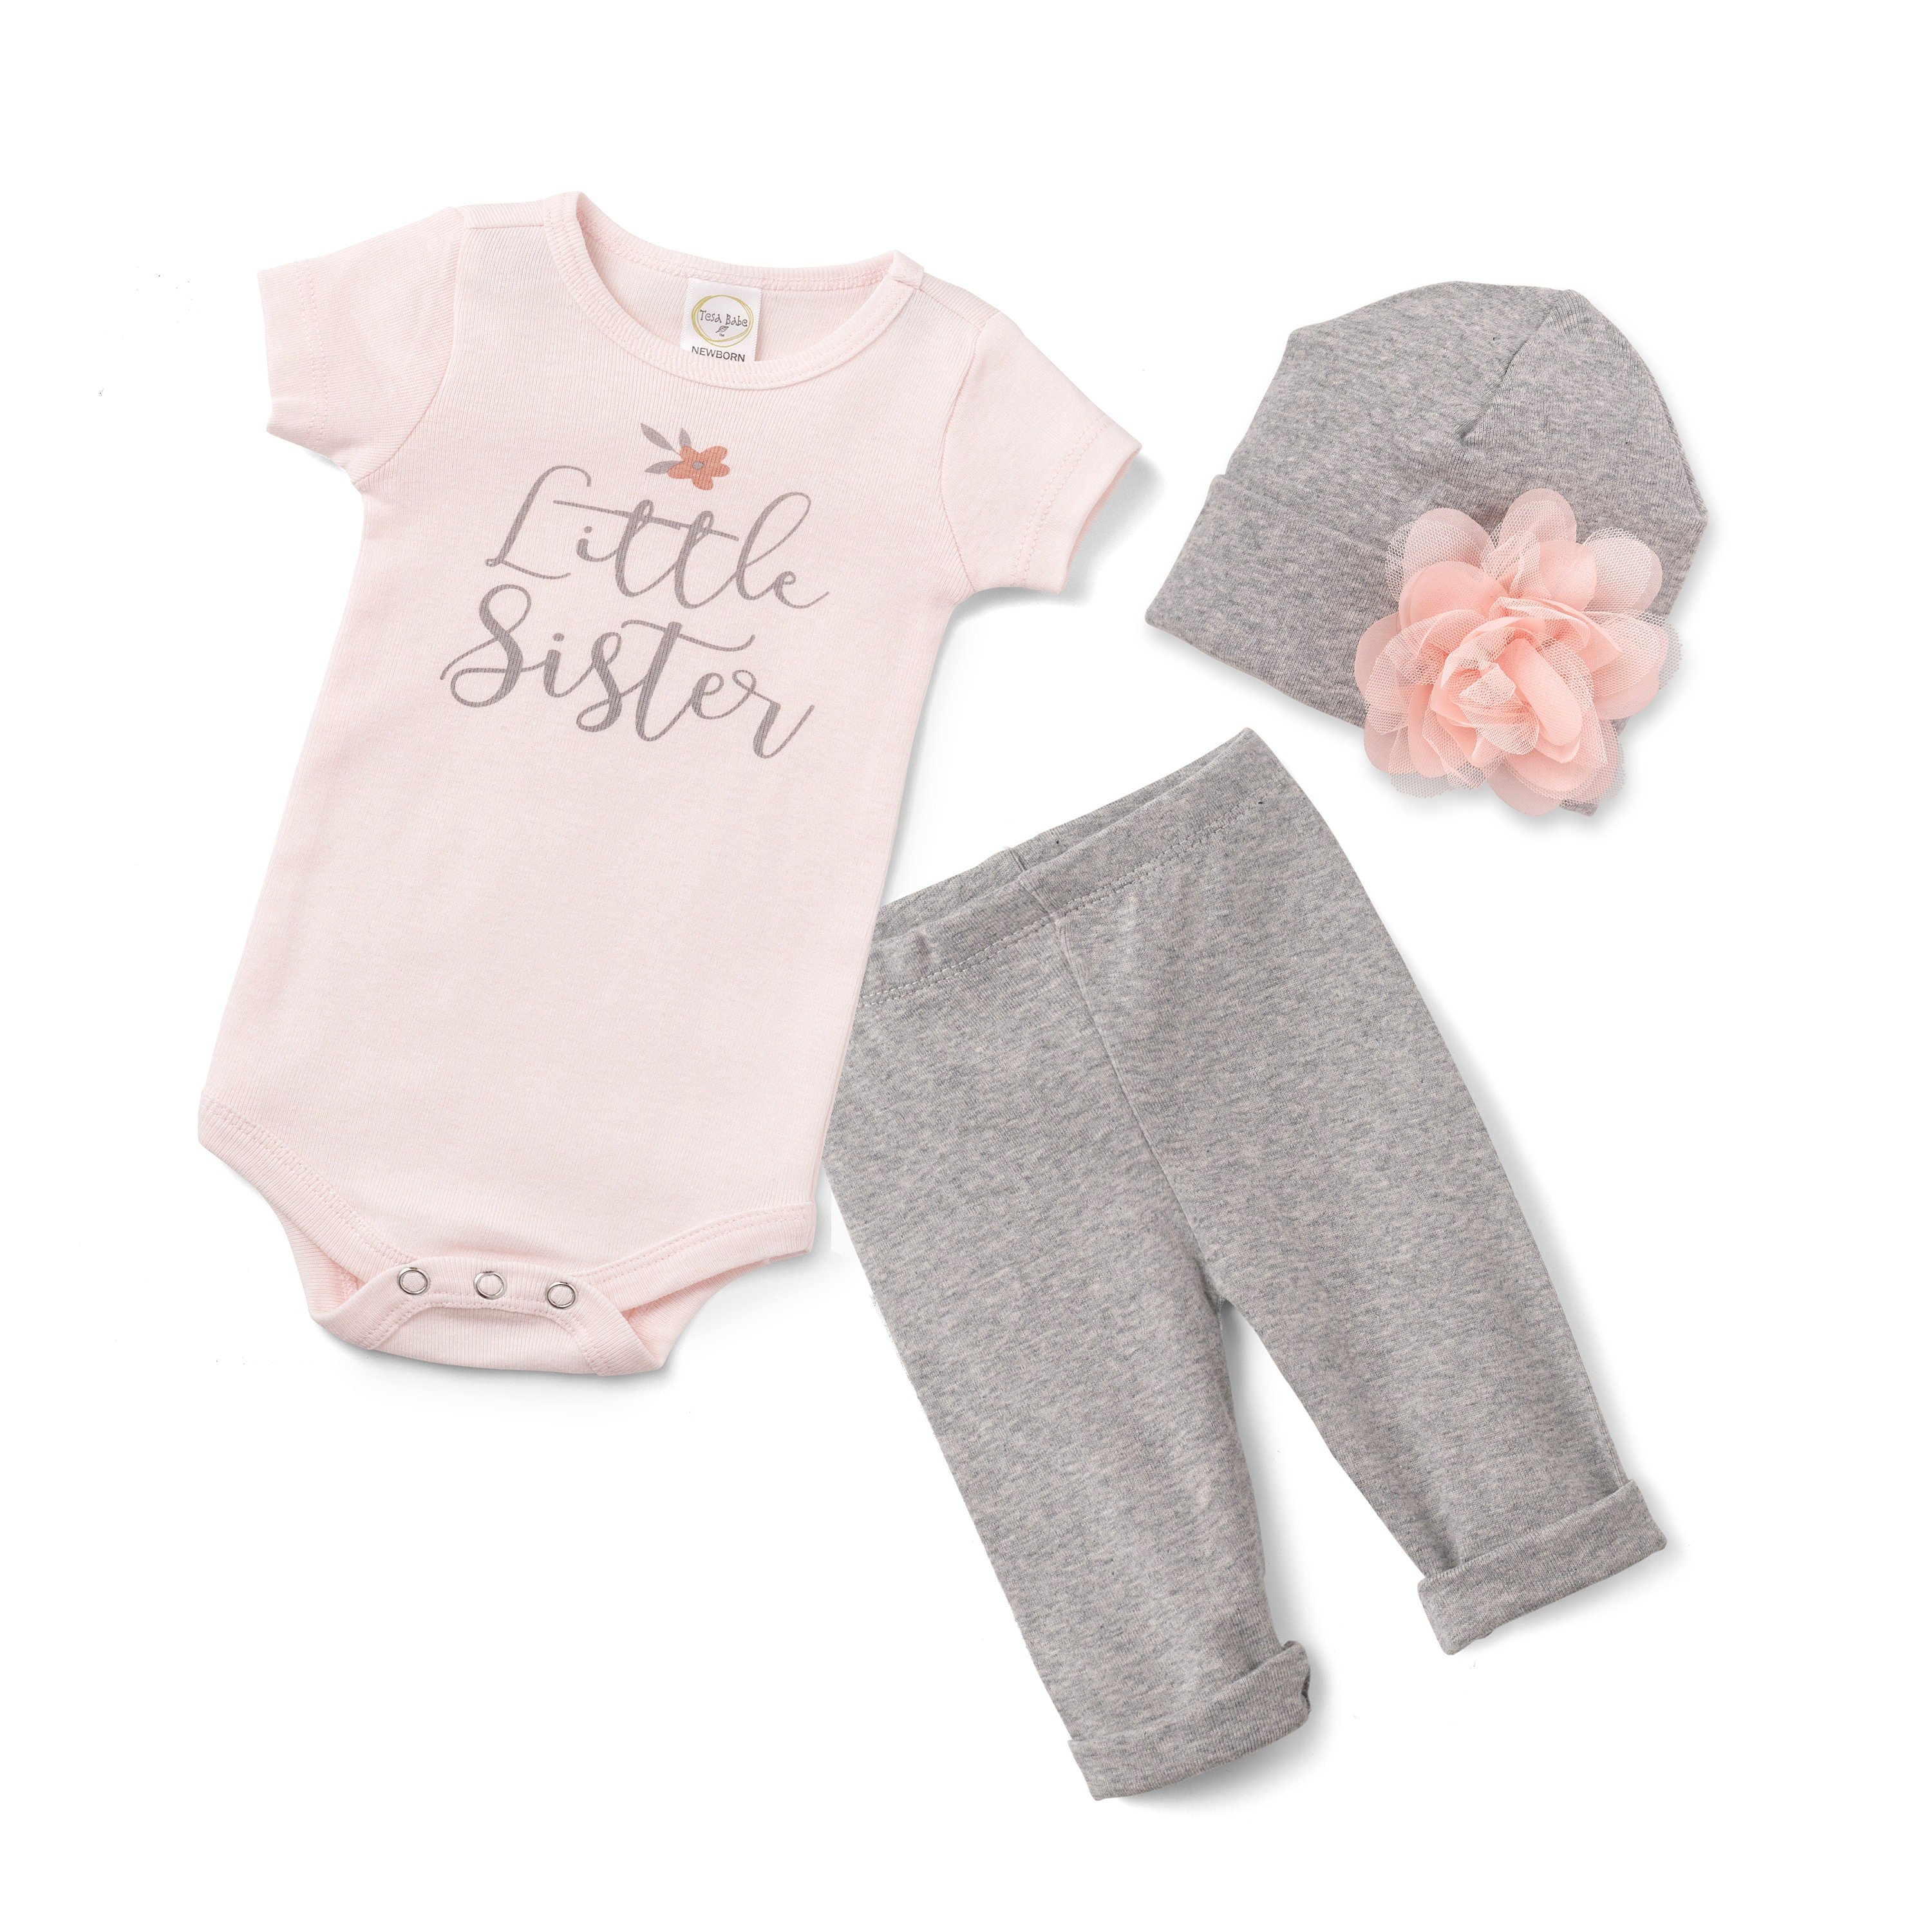 8b5261fa32b6 Little Sister Coming Home Outfit